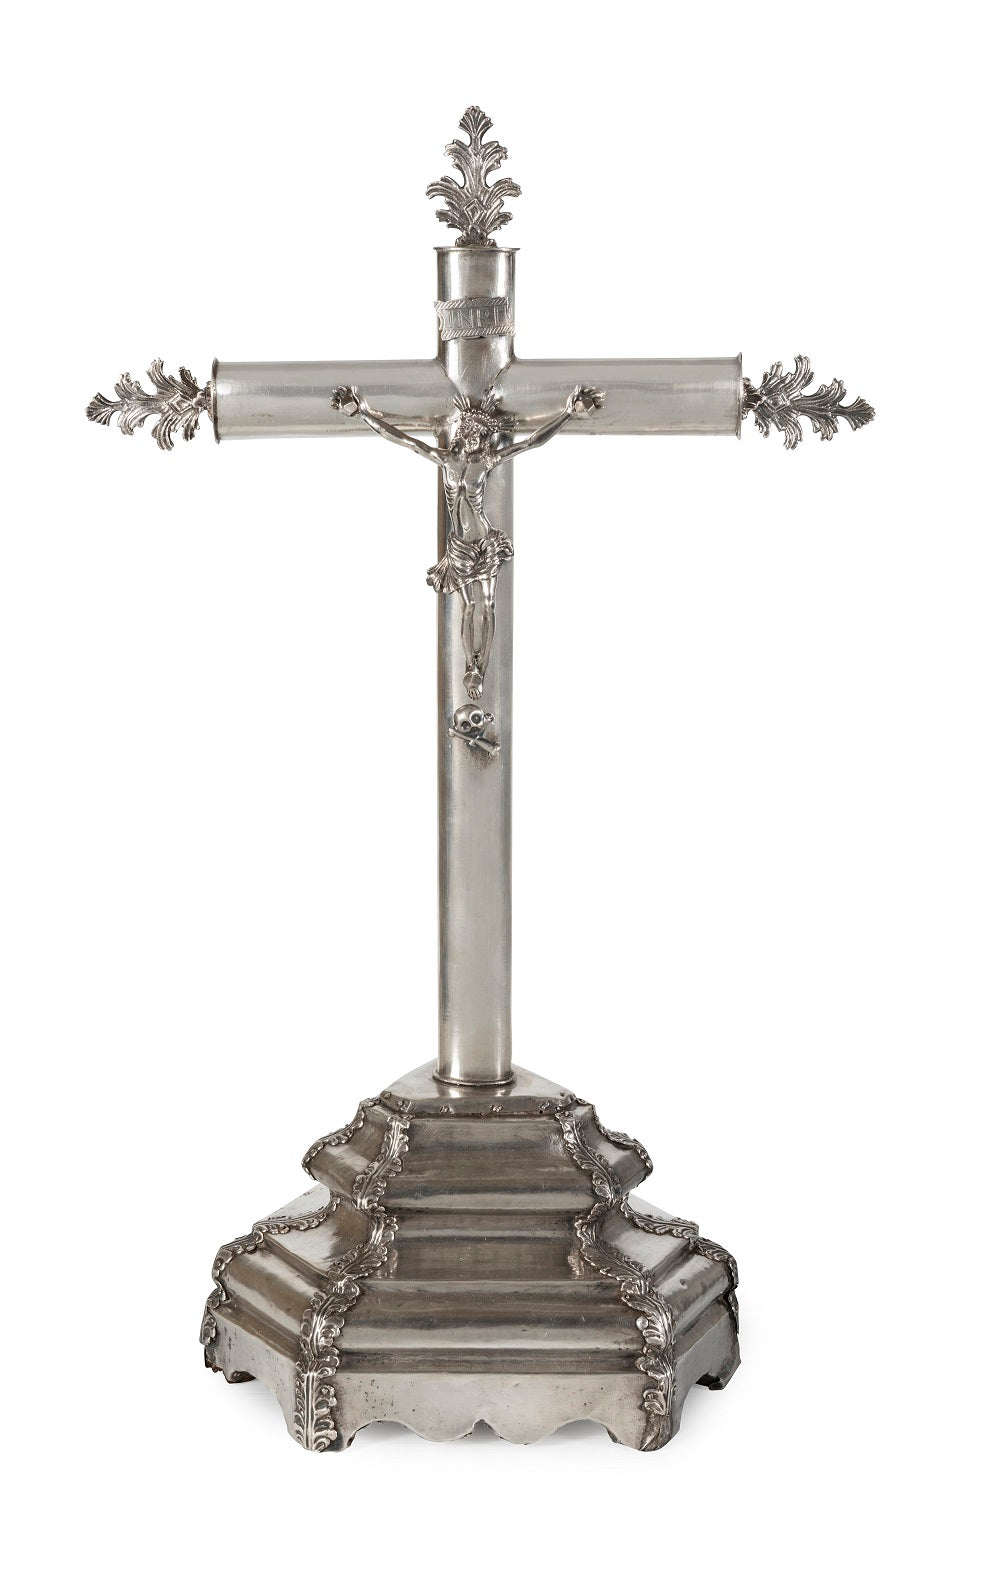 A 19th Century Spanish Silver-Plated Alter Crucifix